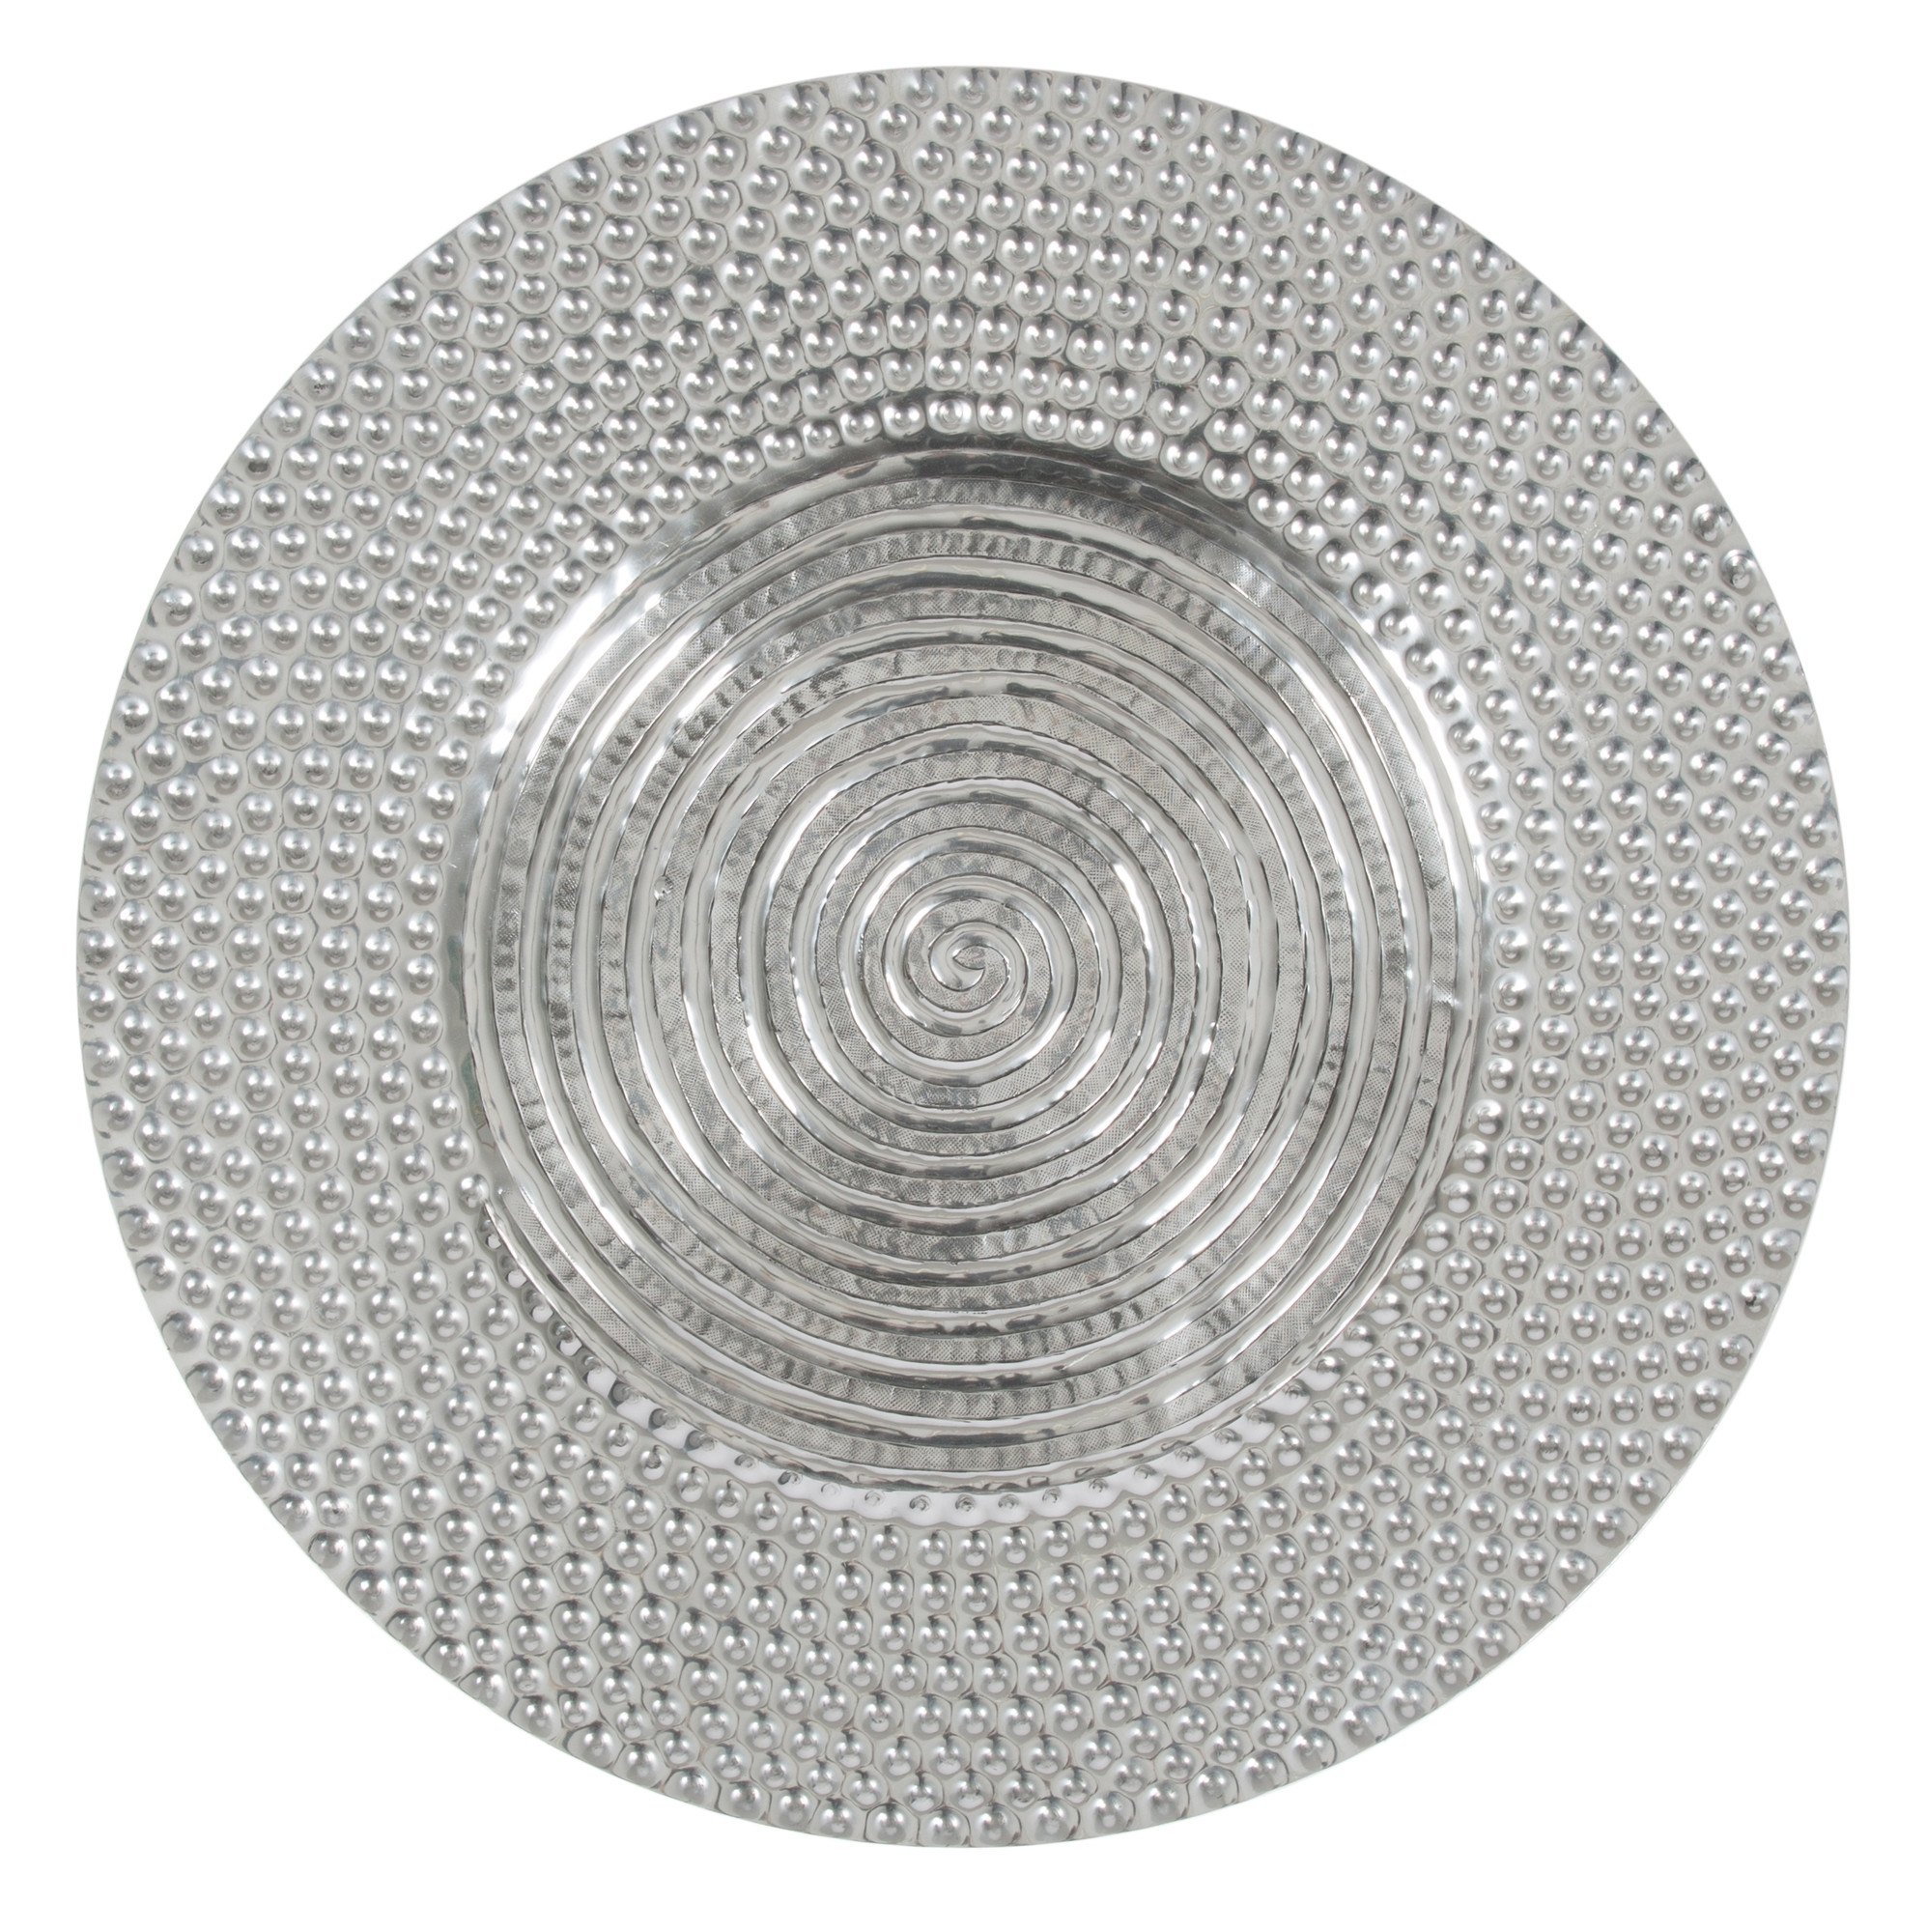 Aluminium Antique Round Wall Art | Temple & Webster Intended For Most Popular Round Wall Art (View 4 of 20)